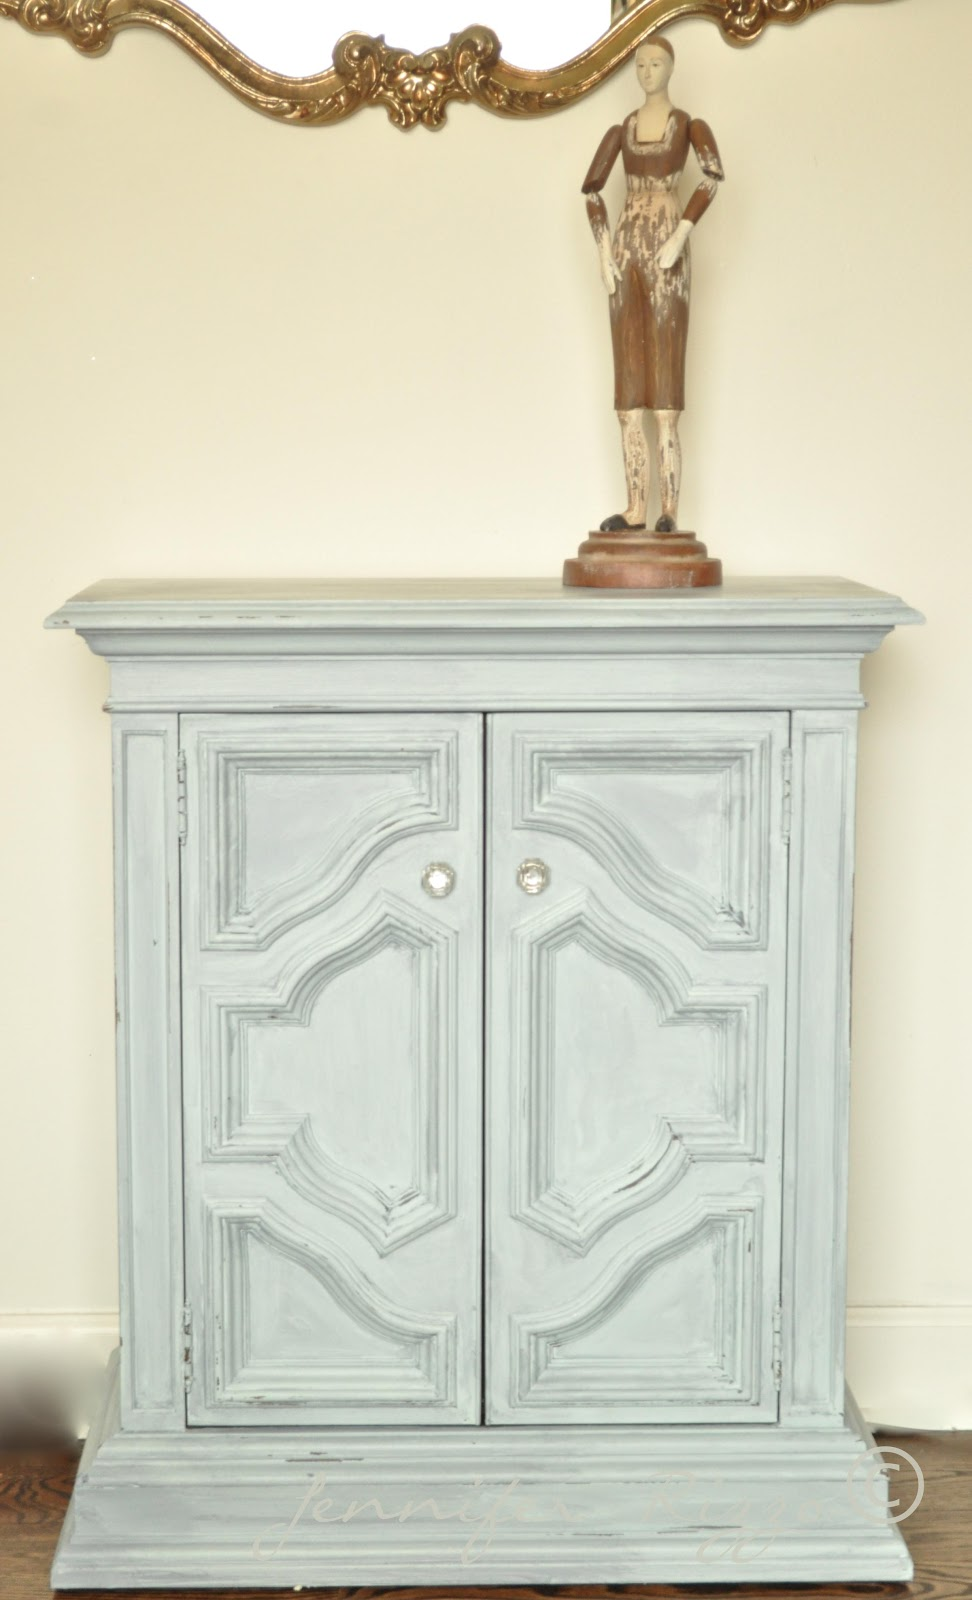 Move Furniture Painting Pleasing Olddated Cabinet Repainted And Madeover With New Knob Placement . Inspiration Design